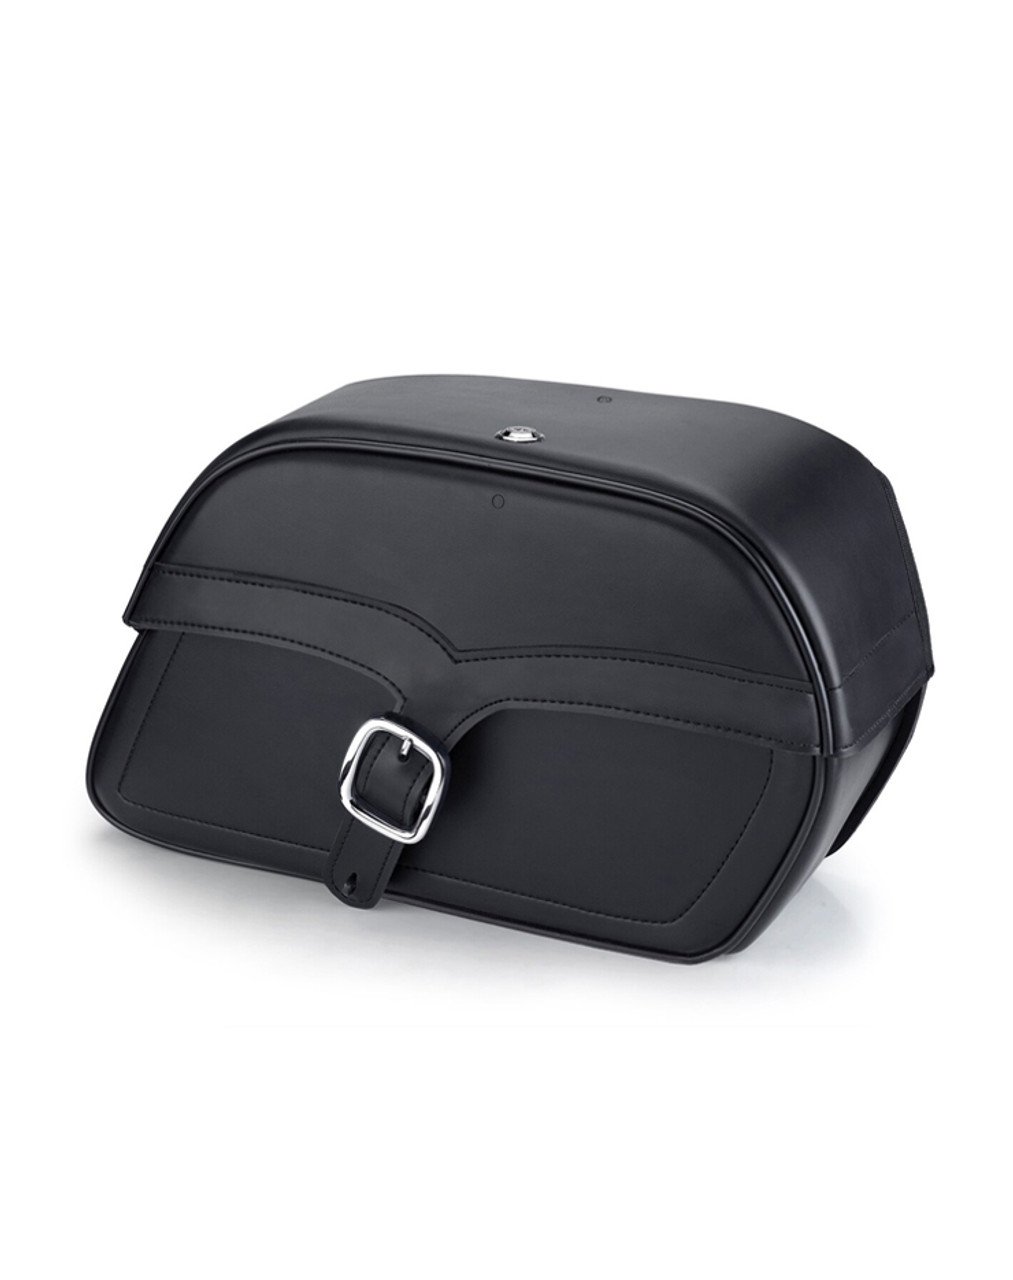 Indian Scout Sixty Medium Charger Single Strap Motorcycle Saddlebags Main Bag View